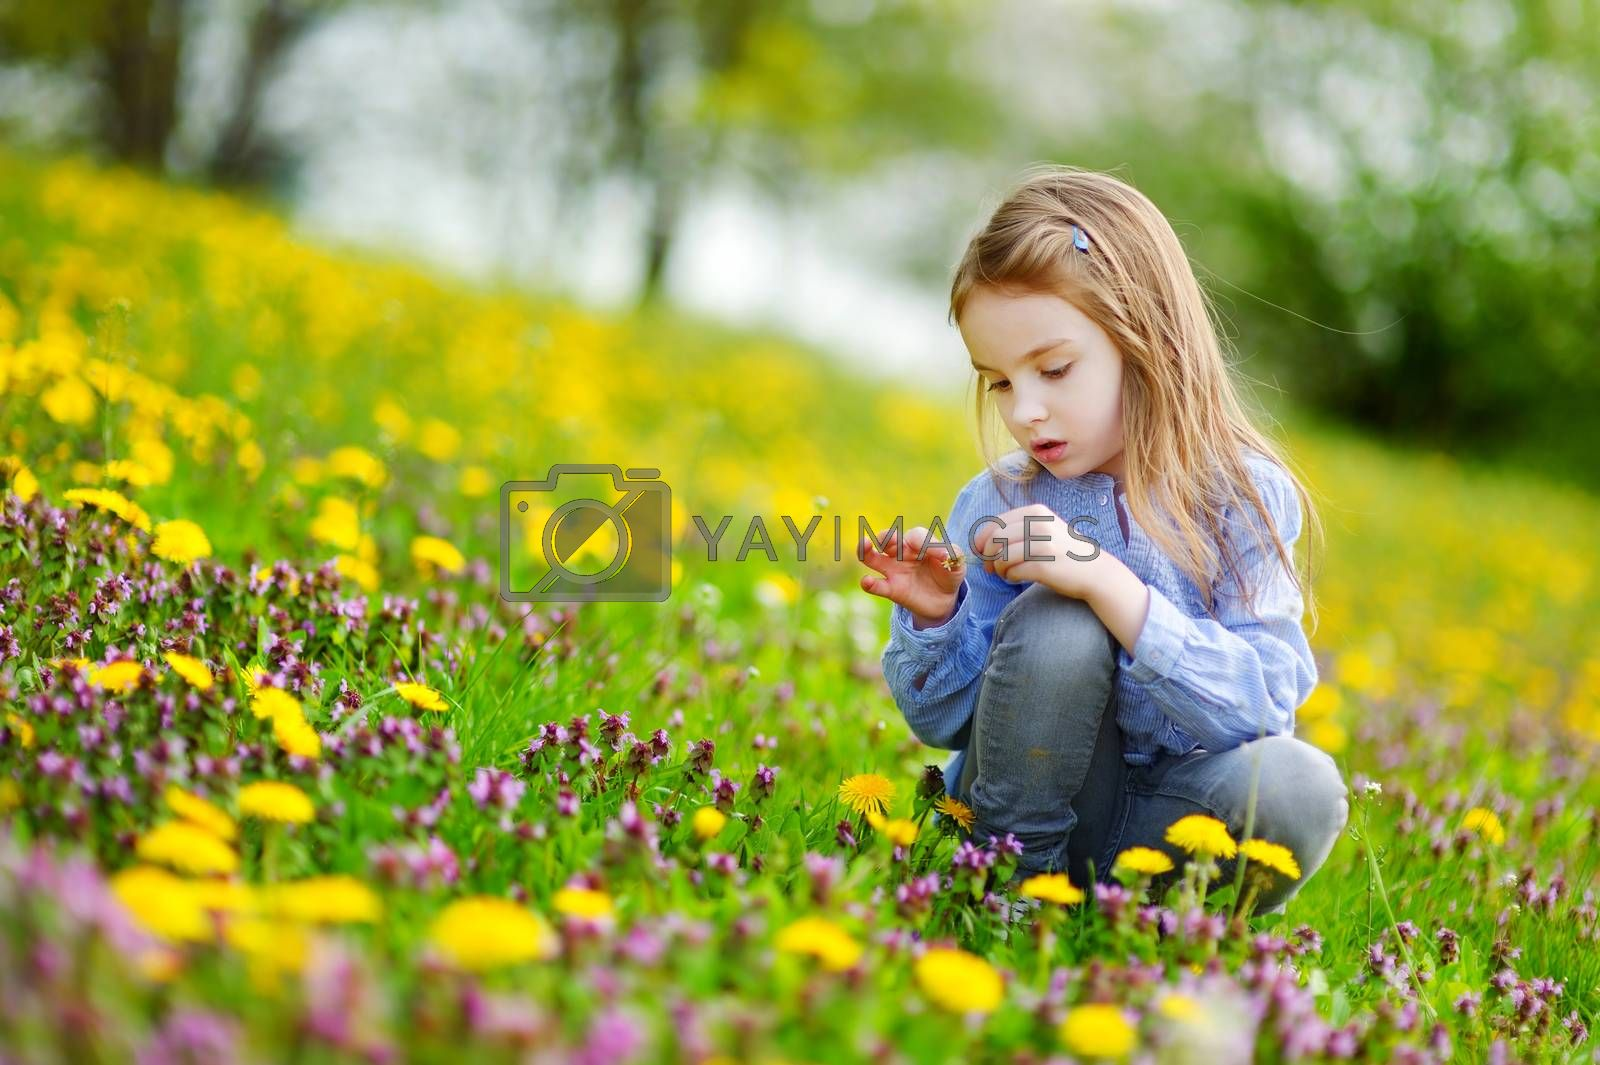 Adorable little girl in blooming dandelion flowers